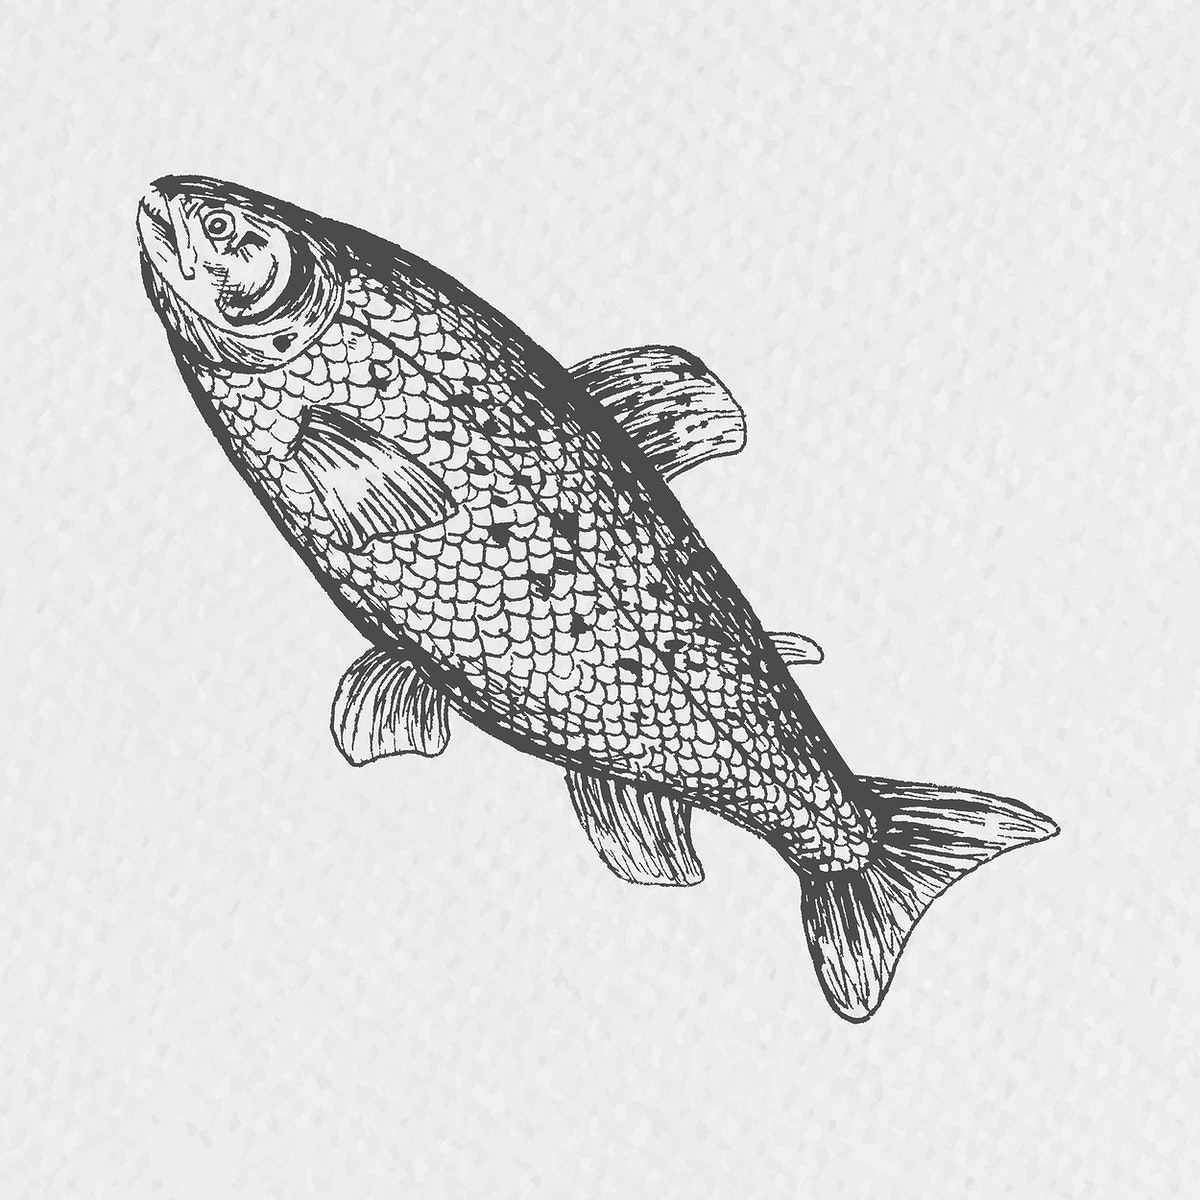 Vintage furry fish sketch social ads template vector